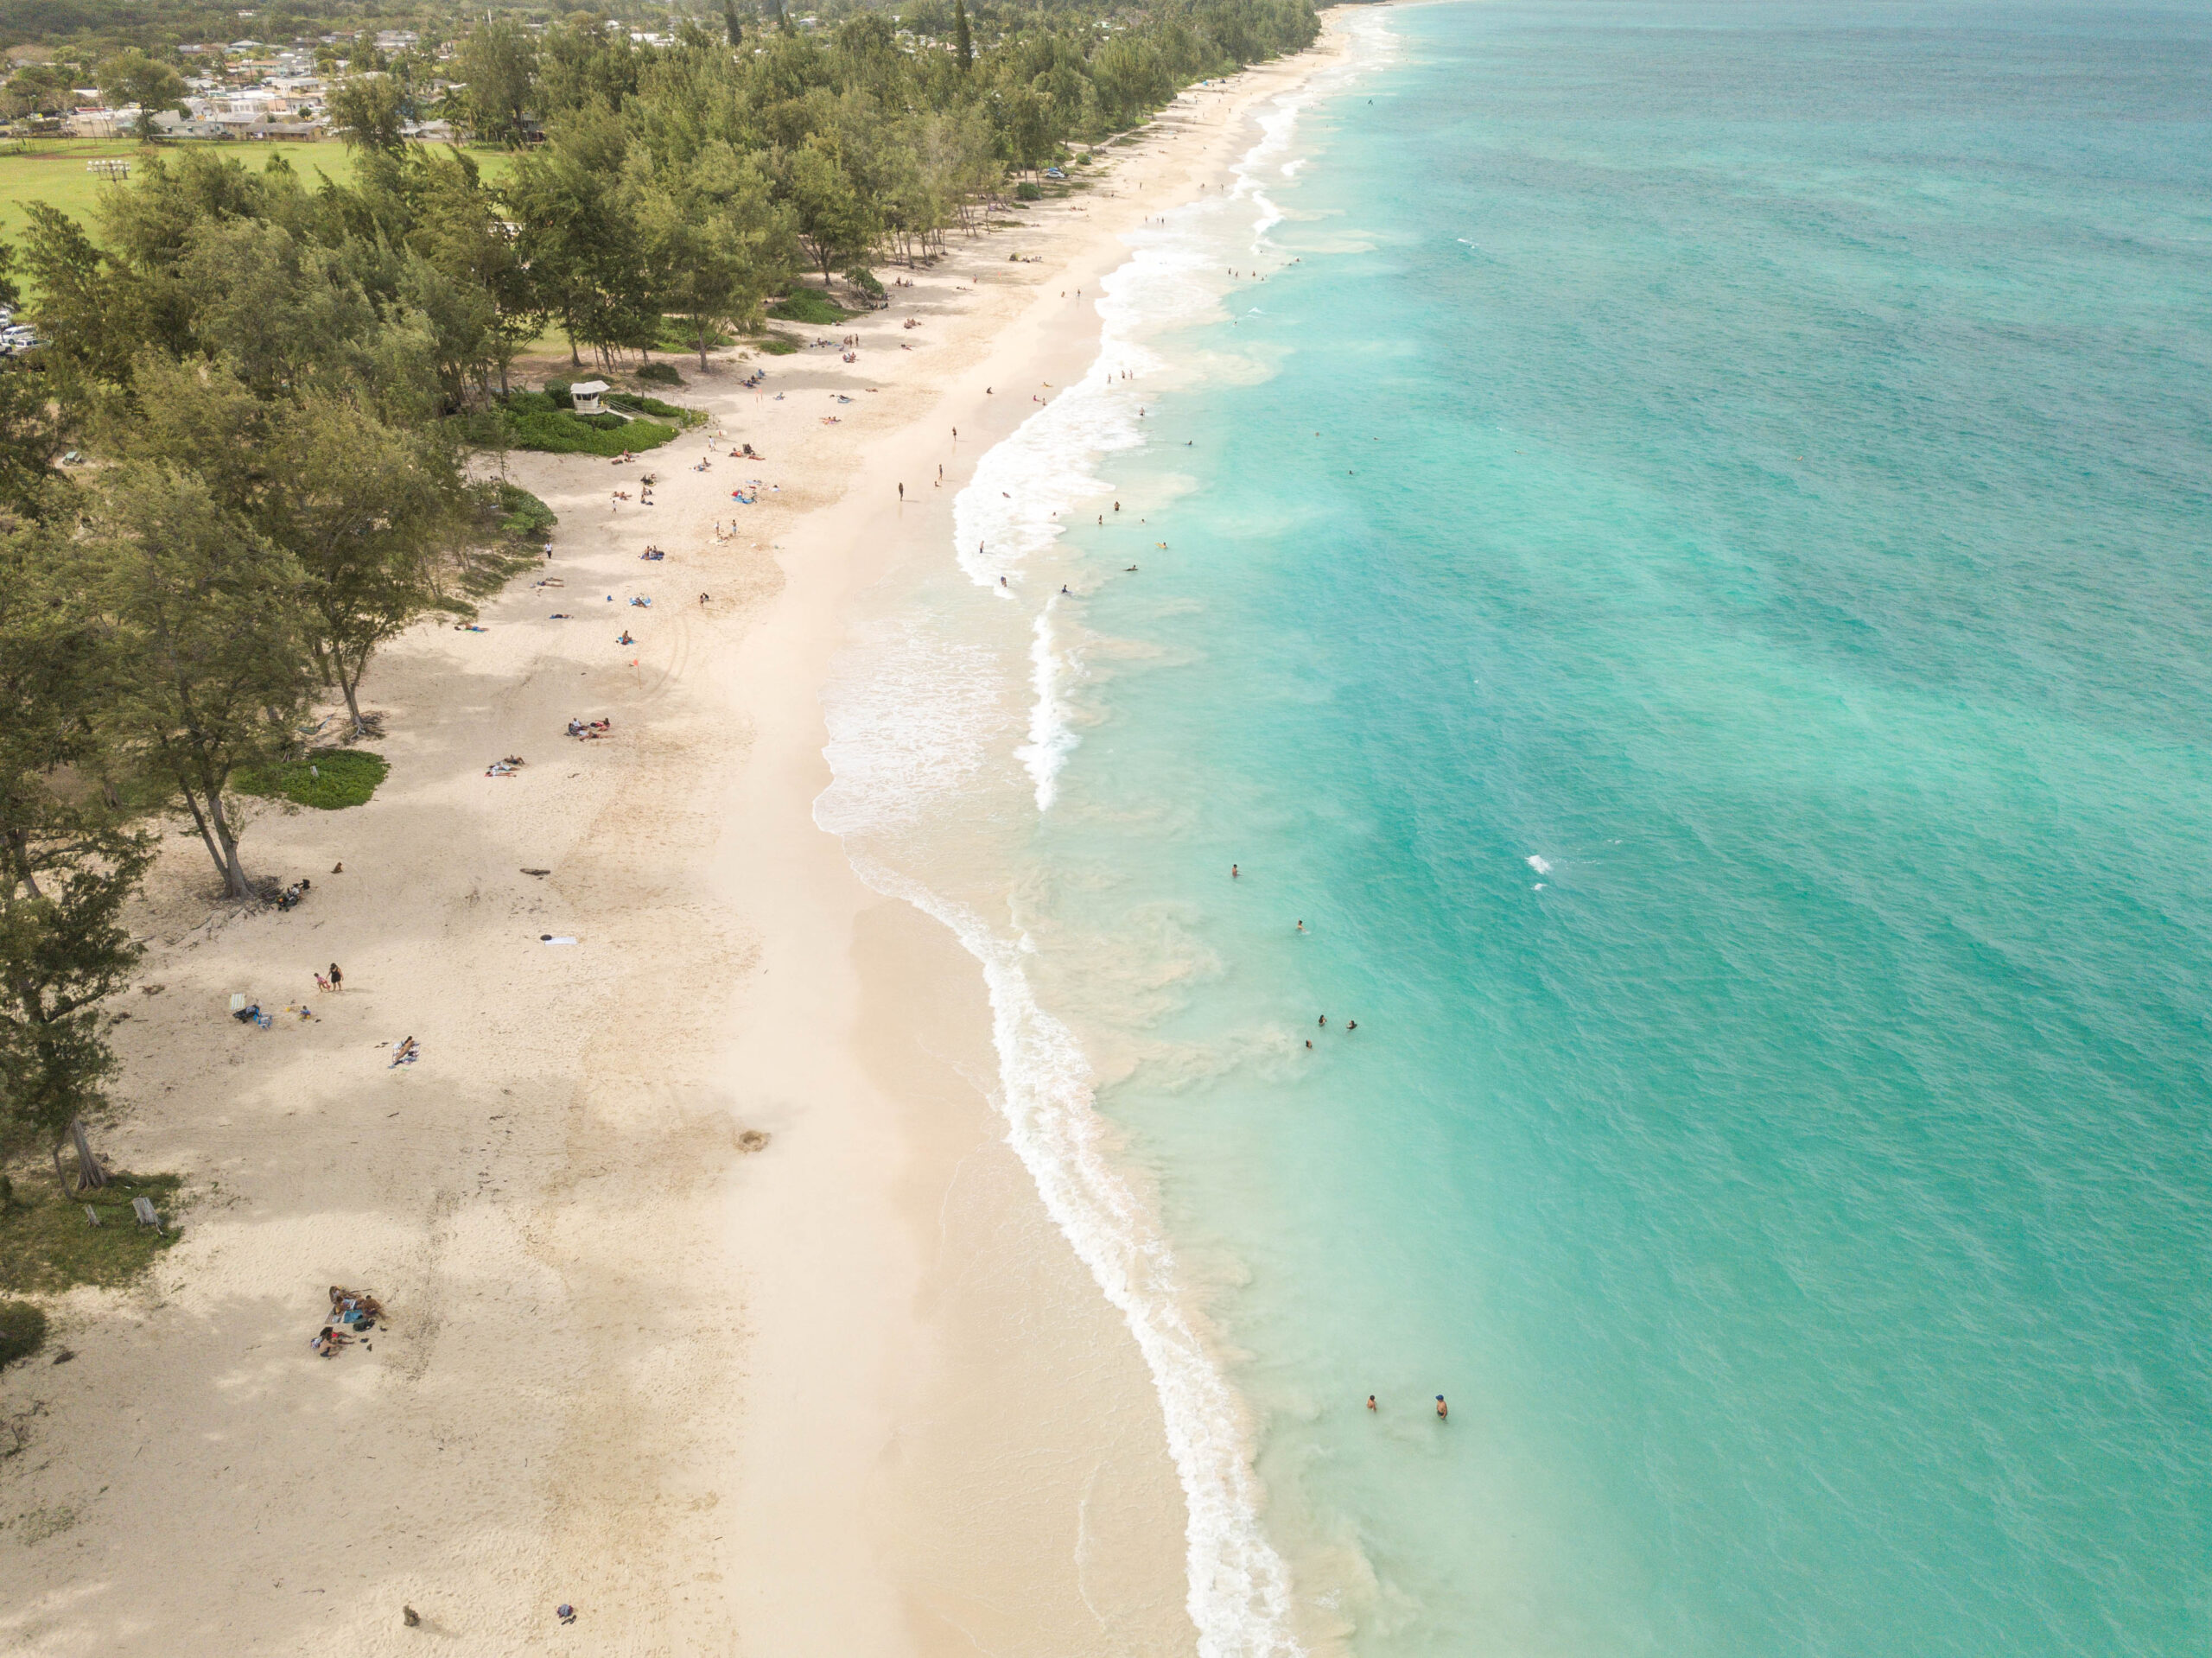 Aerial beach photograph of Waimanalo Beach - White sand with turquoise ocean and forest line